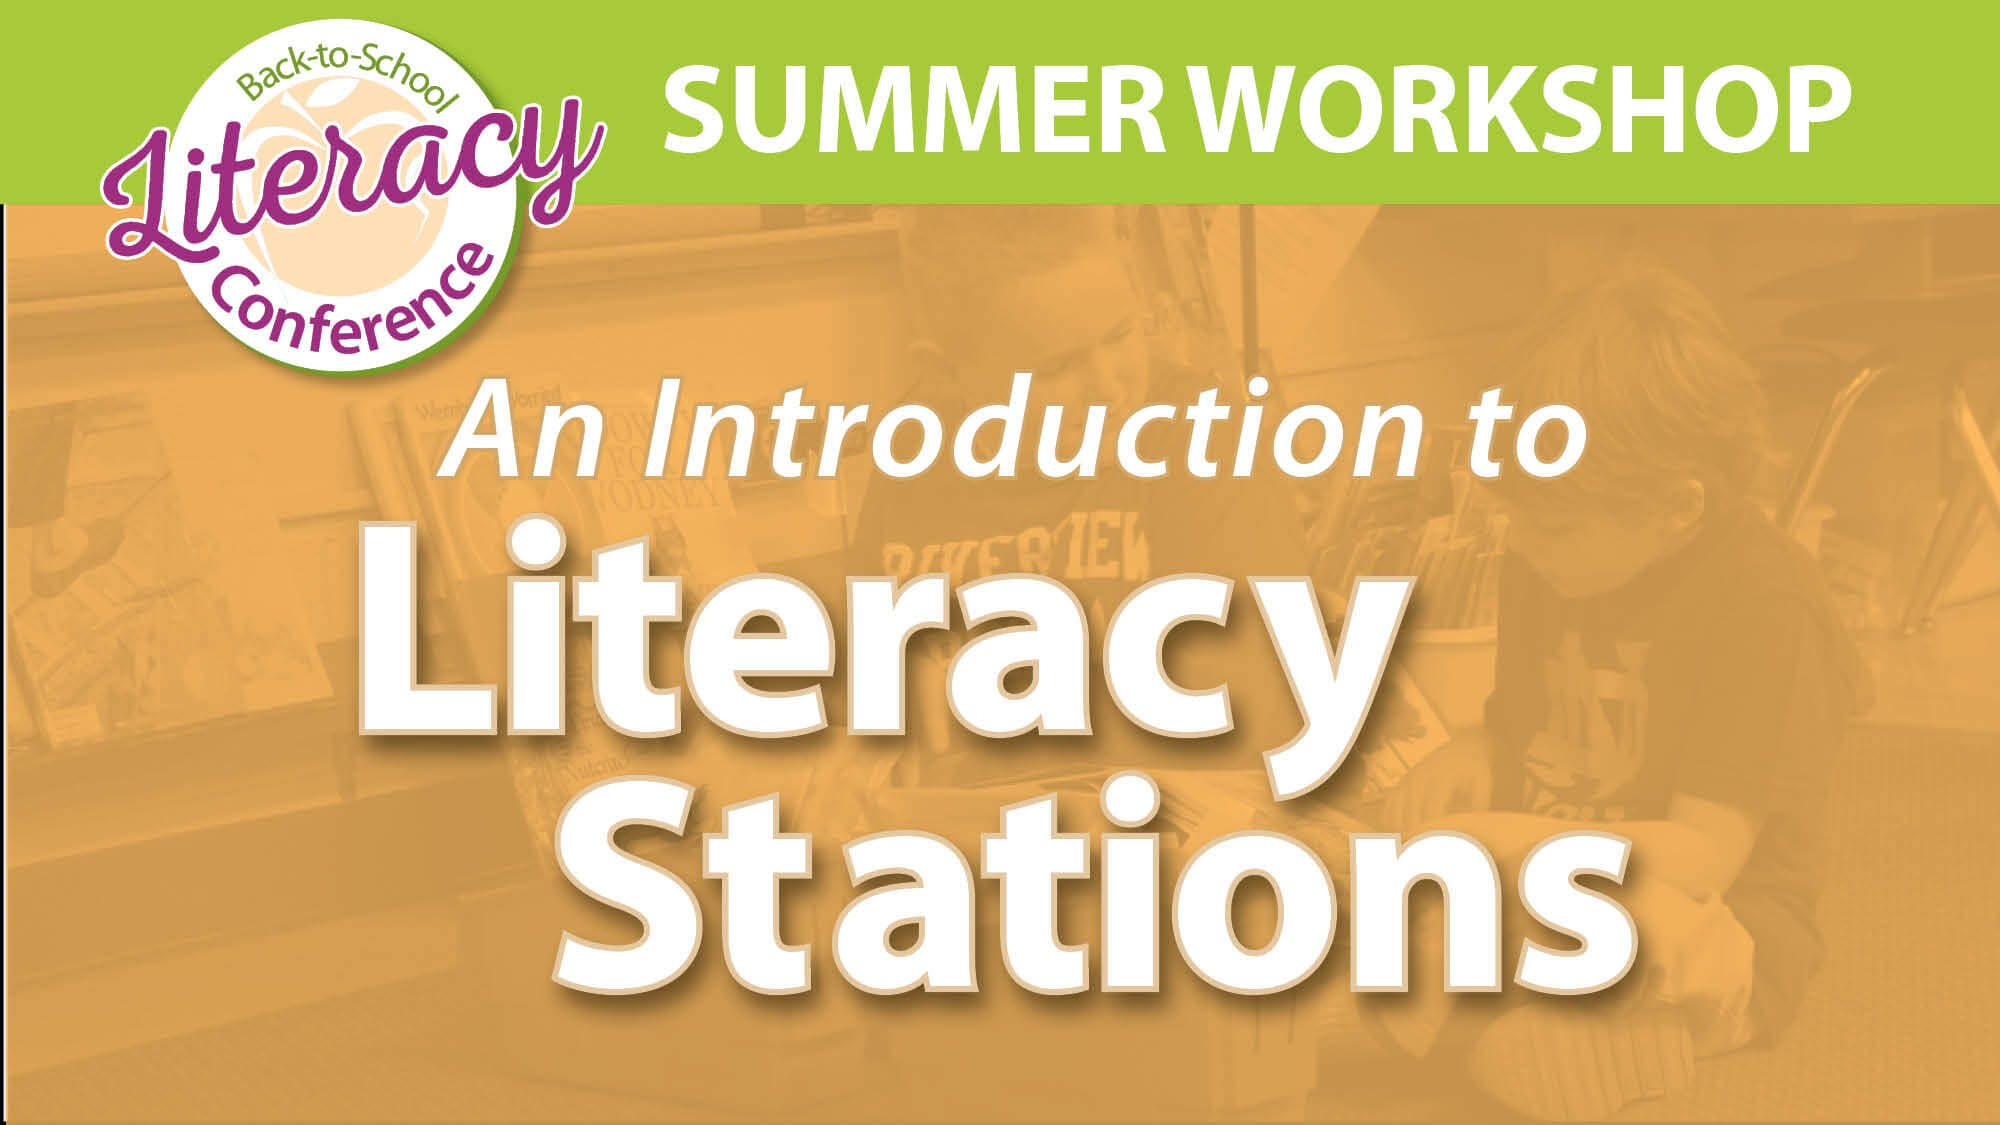 Back-to-School Literacy Conference: An Introduction to Literacy Stations